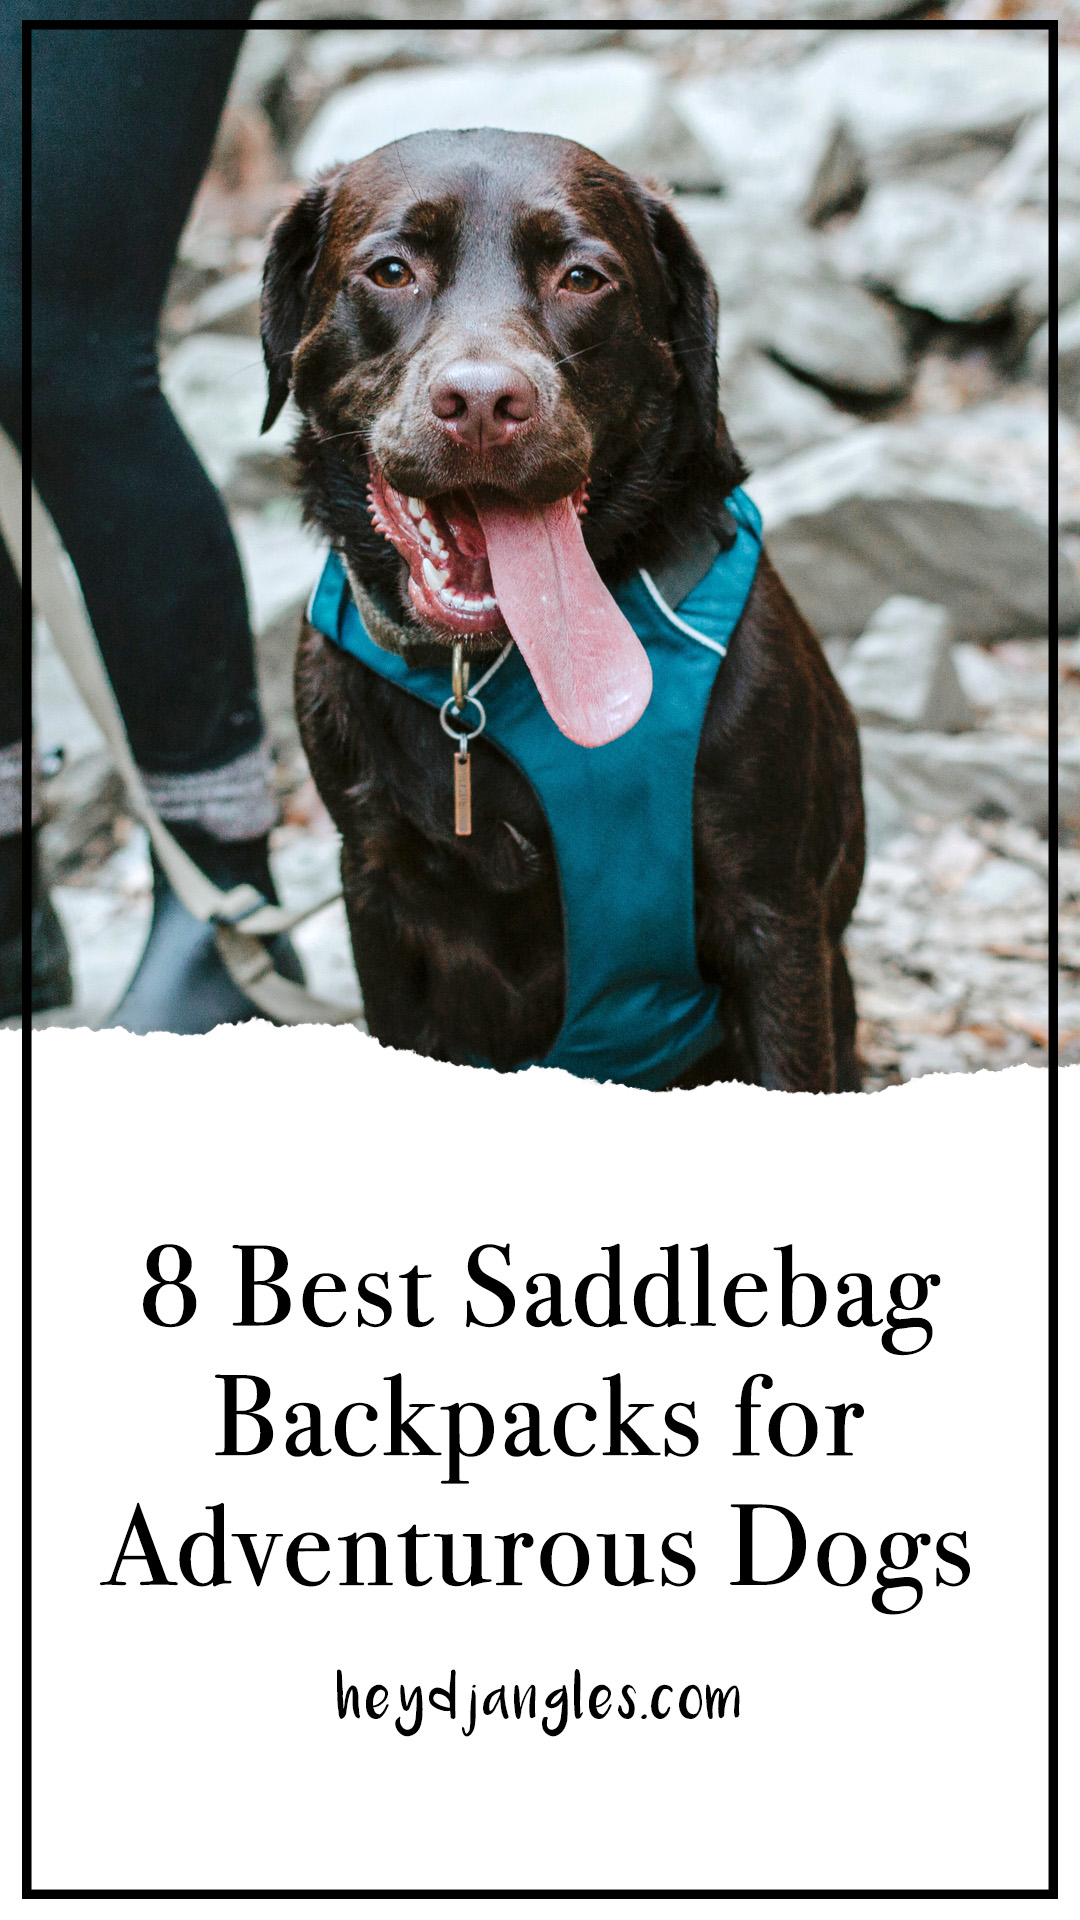 8 Best Saddlebags for Dogs: Backpacks for Adventurous Canines! – heydjangles.com – best dog saddle bags, dog backpacks with saddle bags, tactical dog backpacks, dogs that hike.